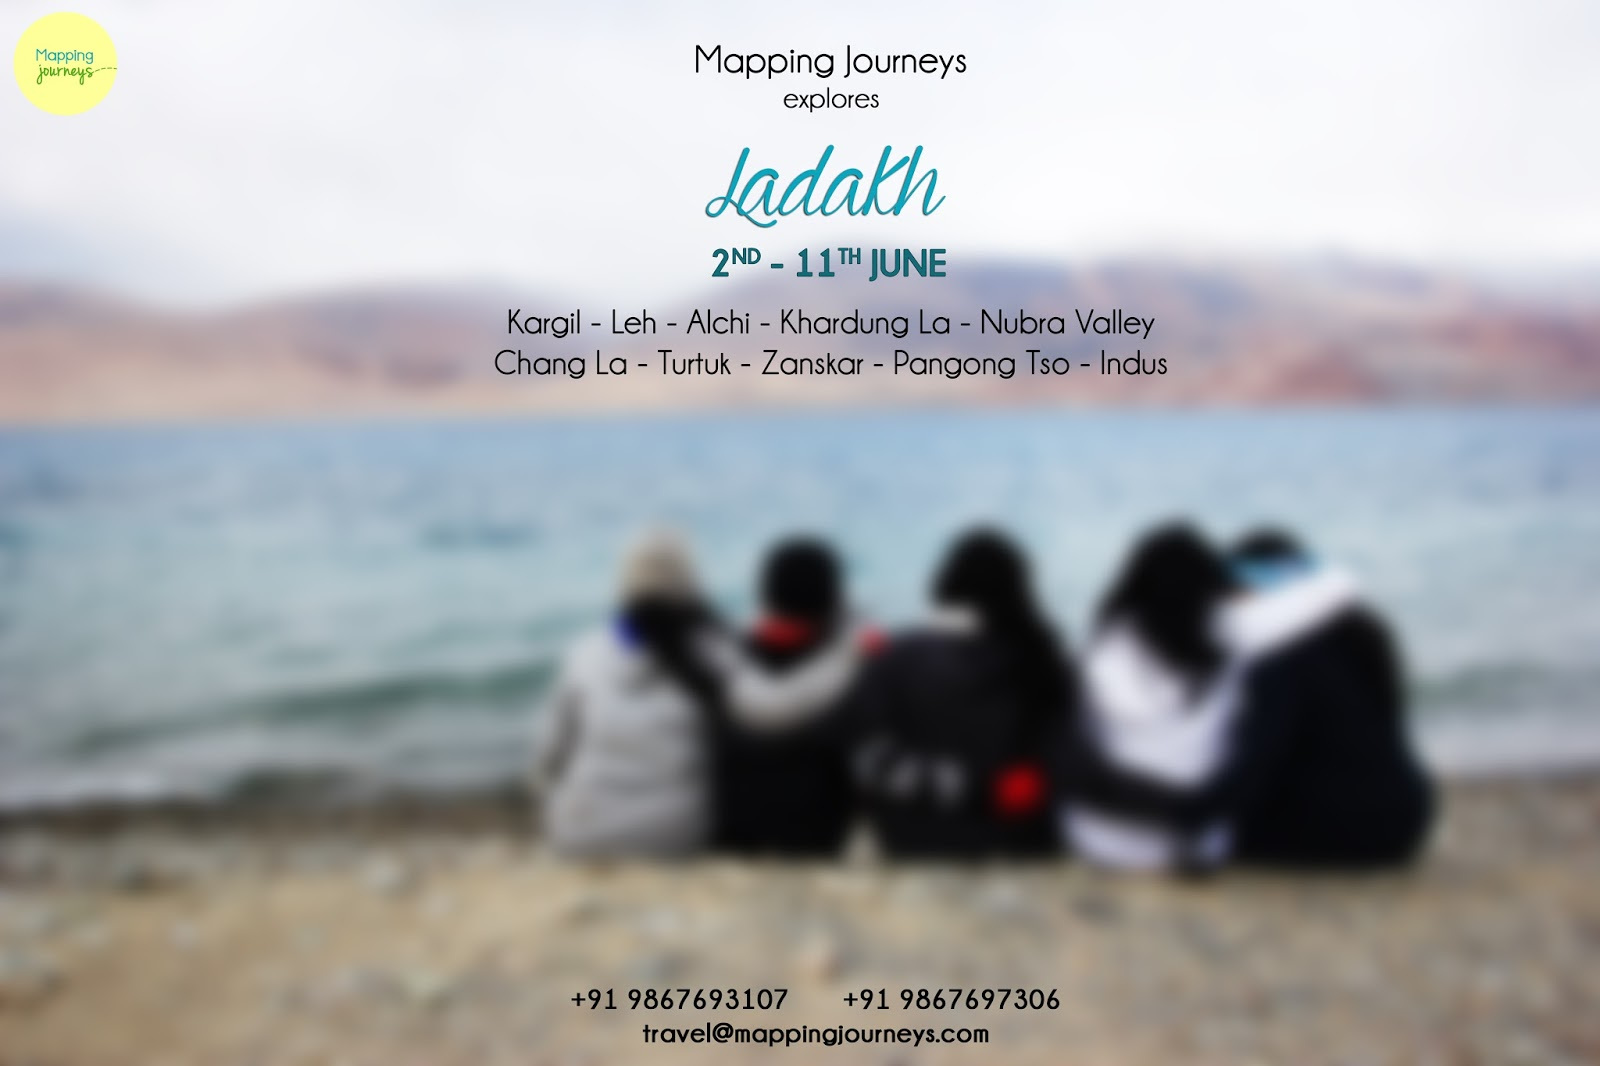 Julley Ladakh! from 2nd to 11th June 2014